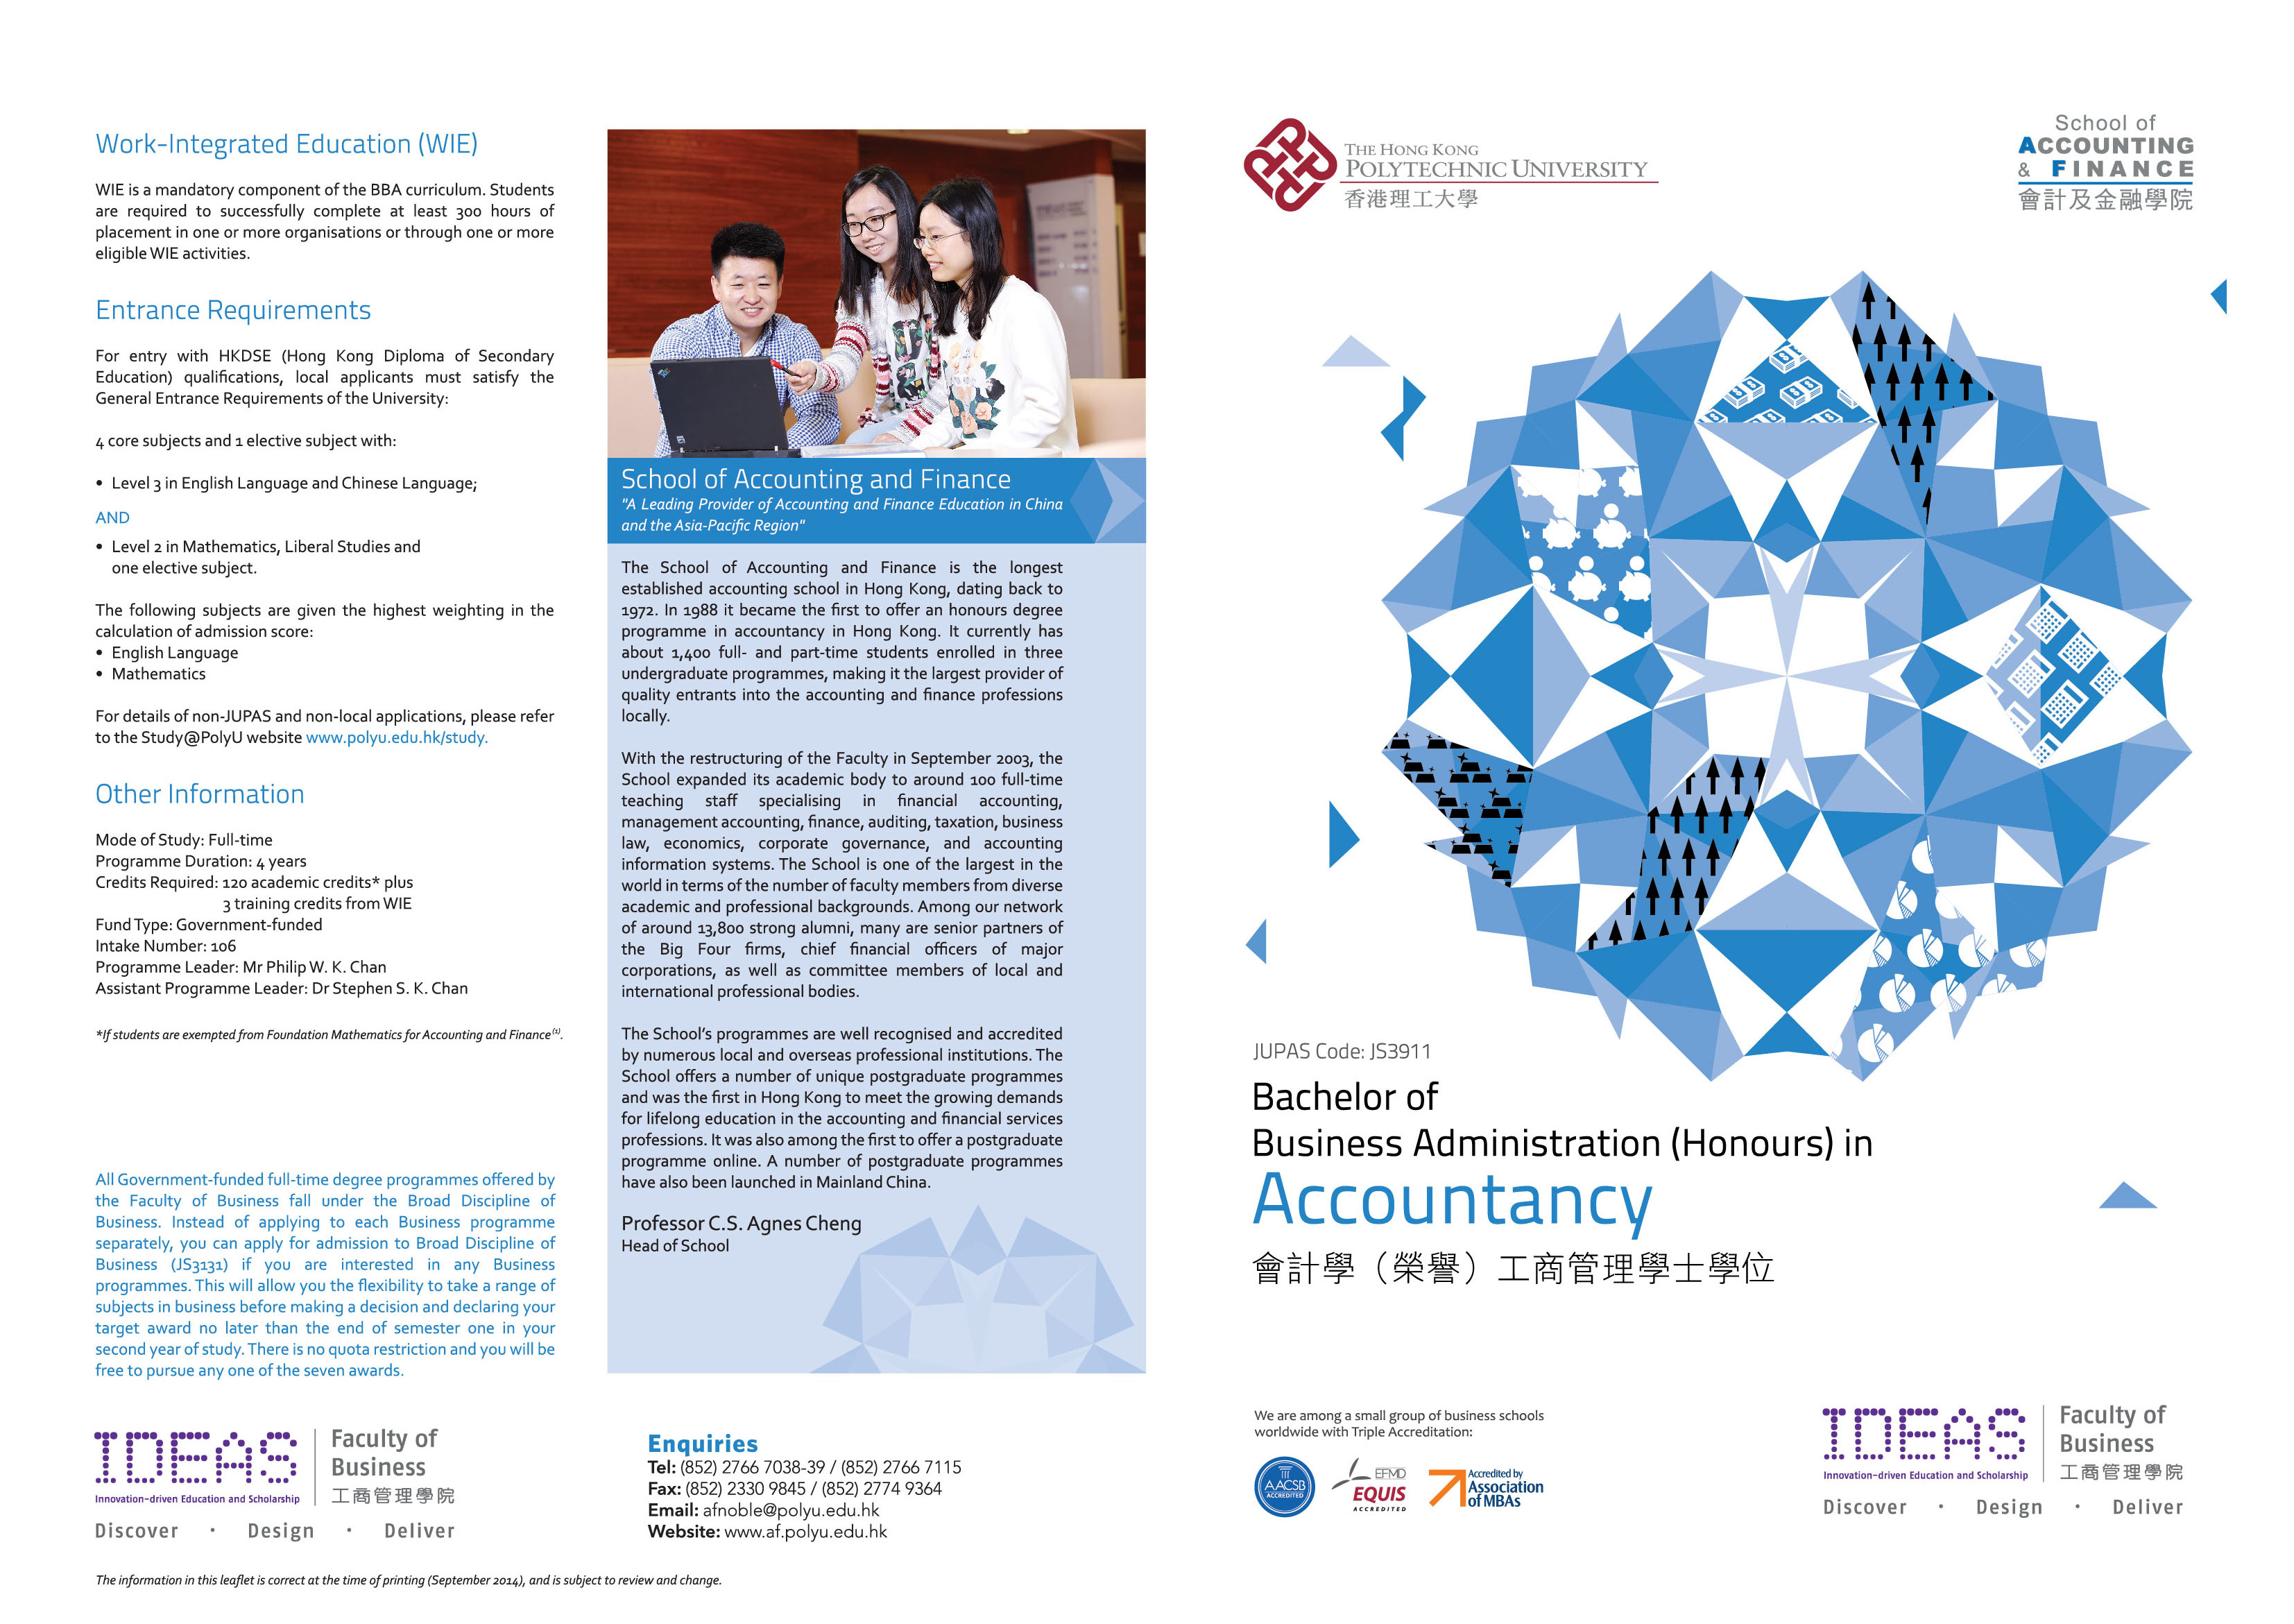 2014-Accountancy_3911-1